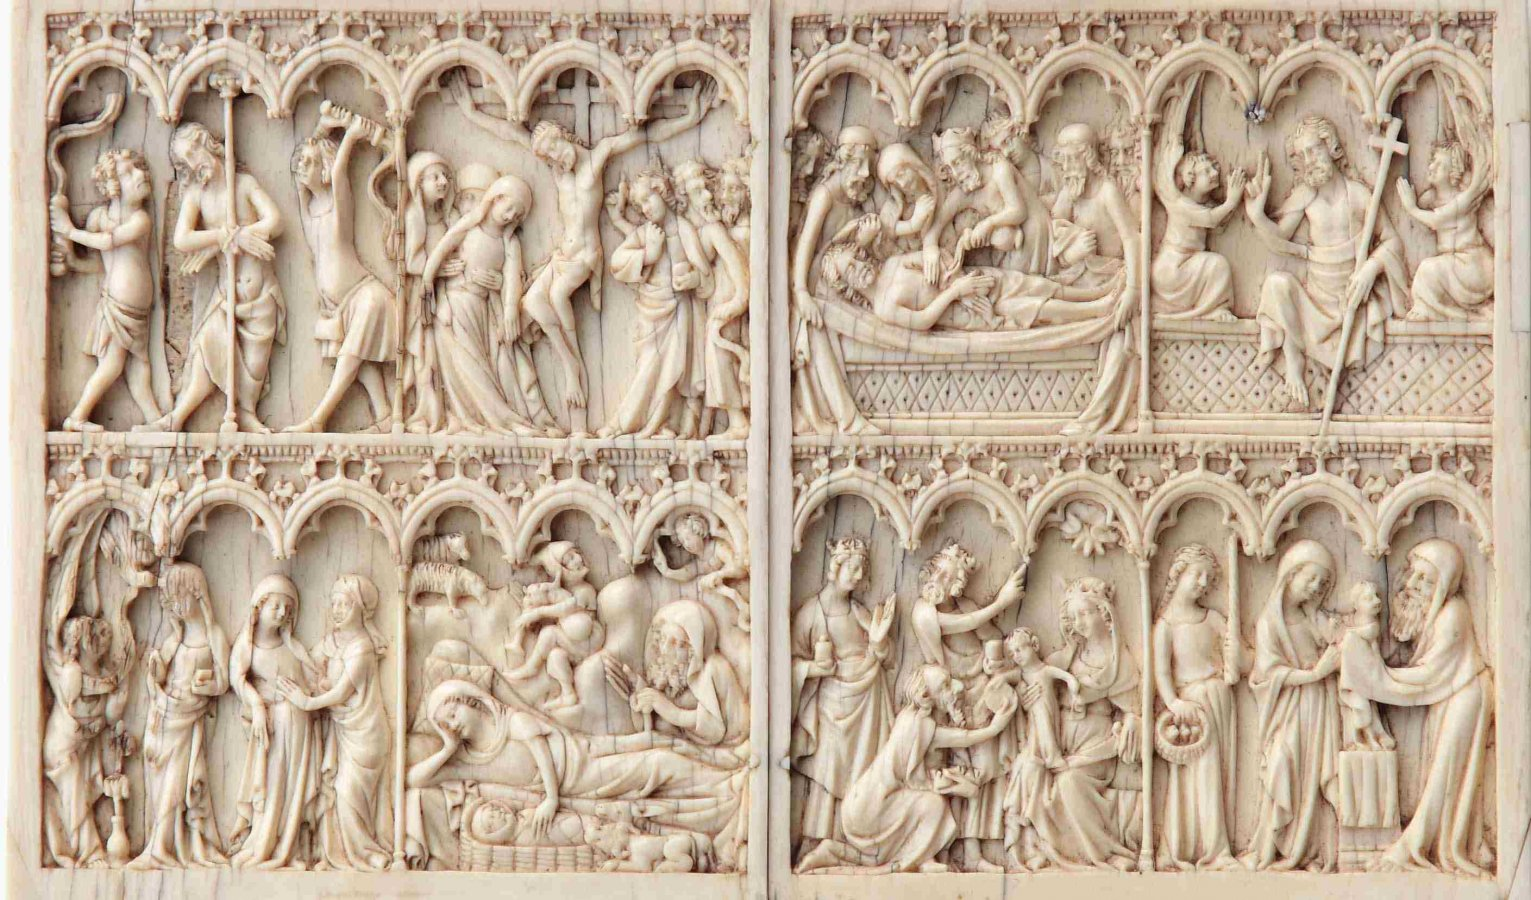 Anonymous French Master, Diptych with Scenes from the Life and Passion of Christ, first half of the 14th century  © Arp Museum Bahnhof Rolandseck / Rau Collection for UNICEF, photo: Mick Vincenz